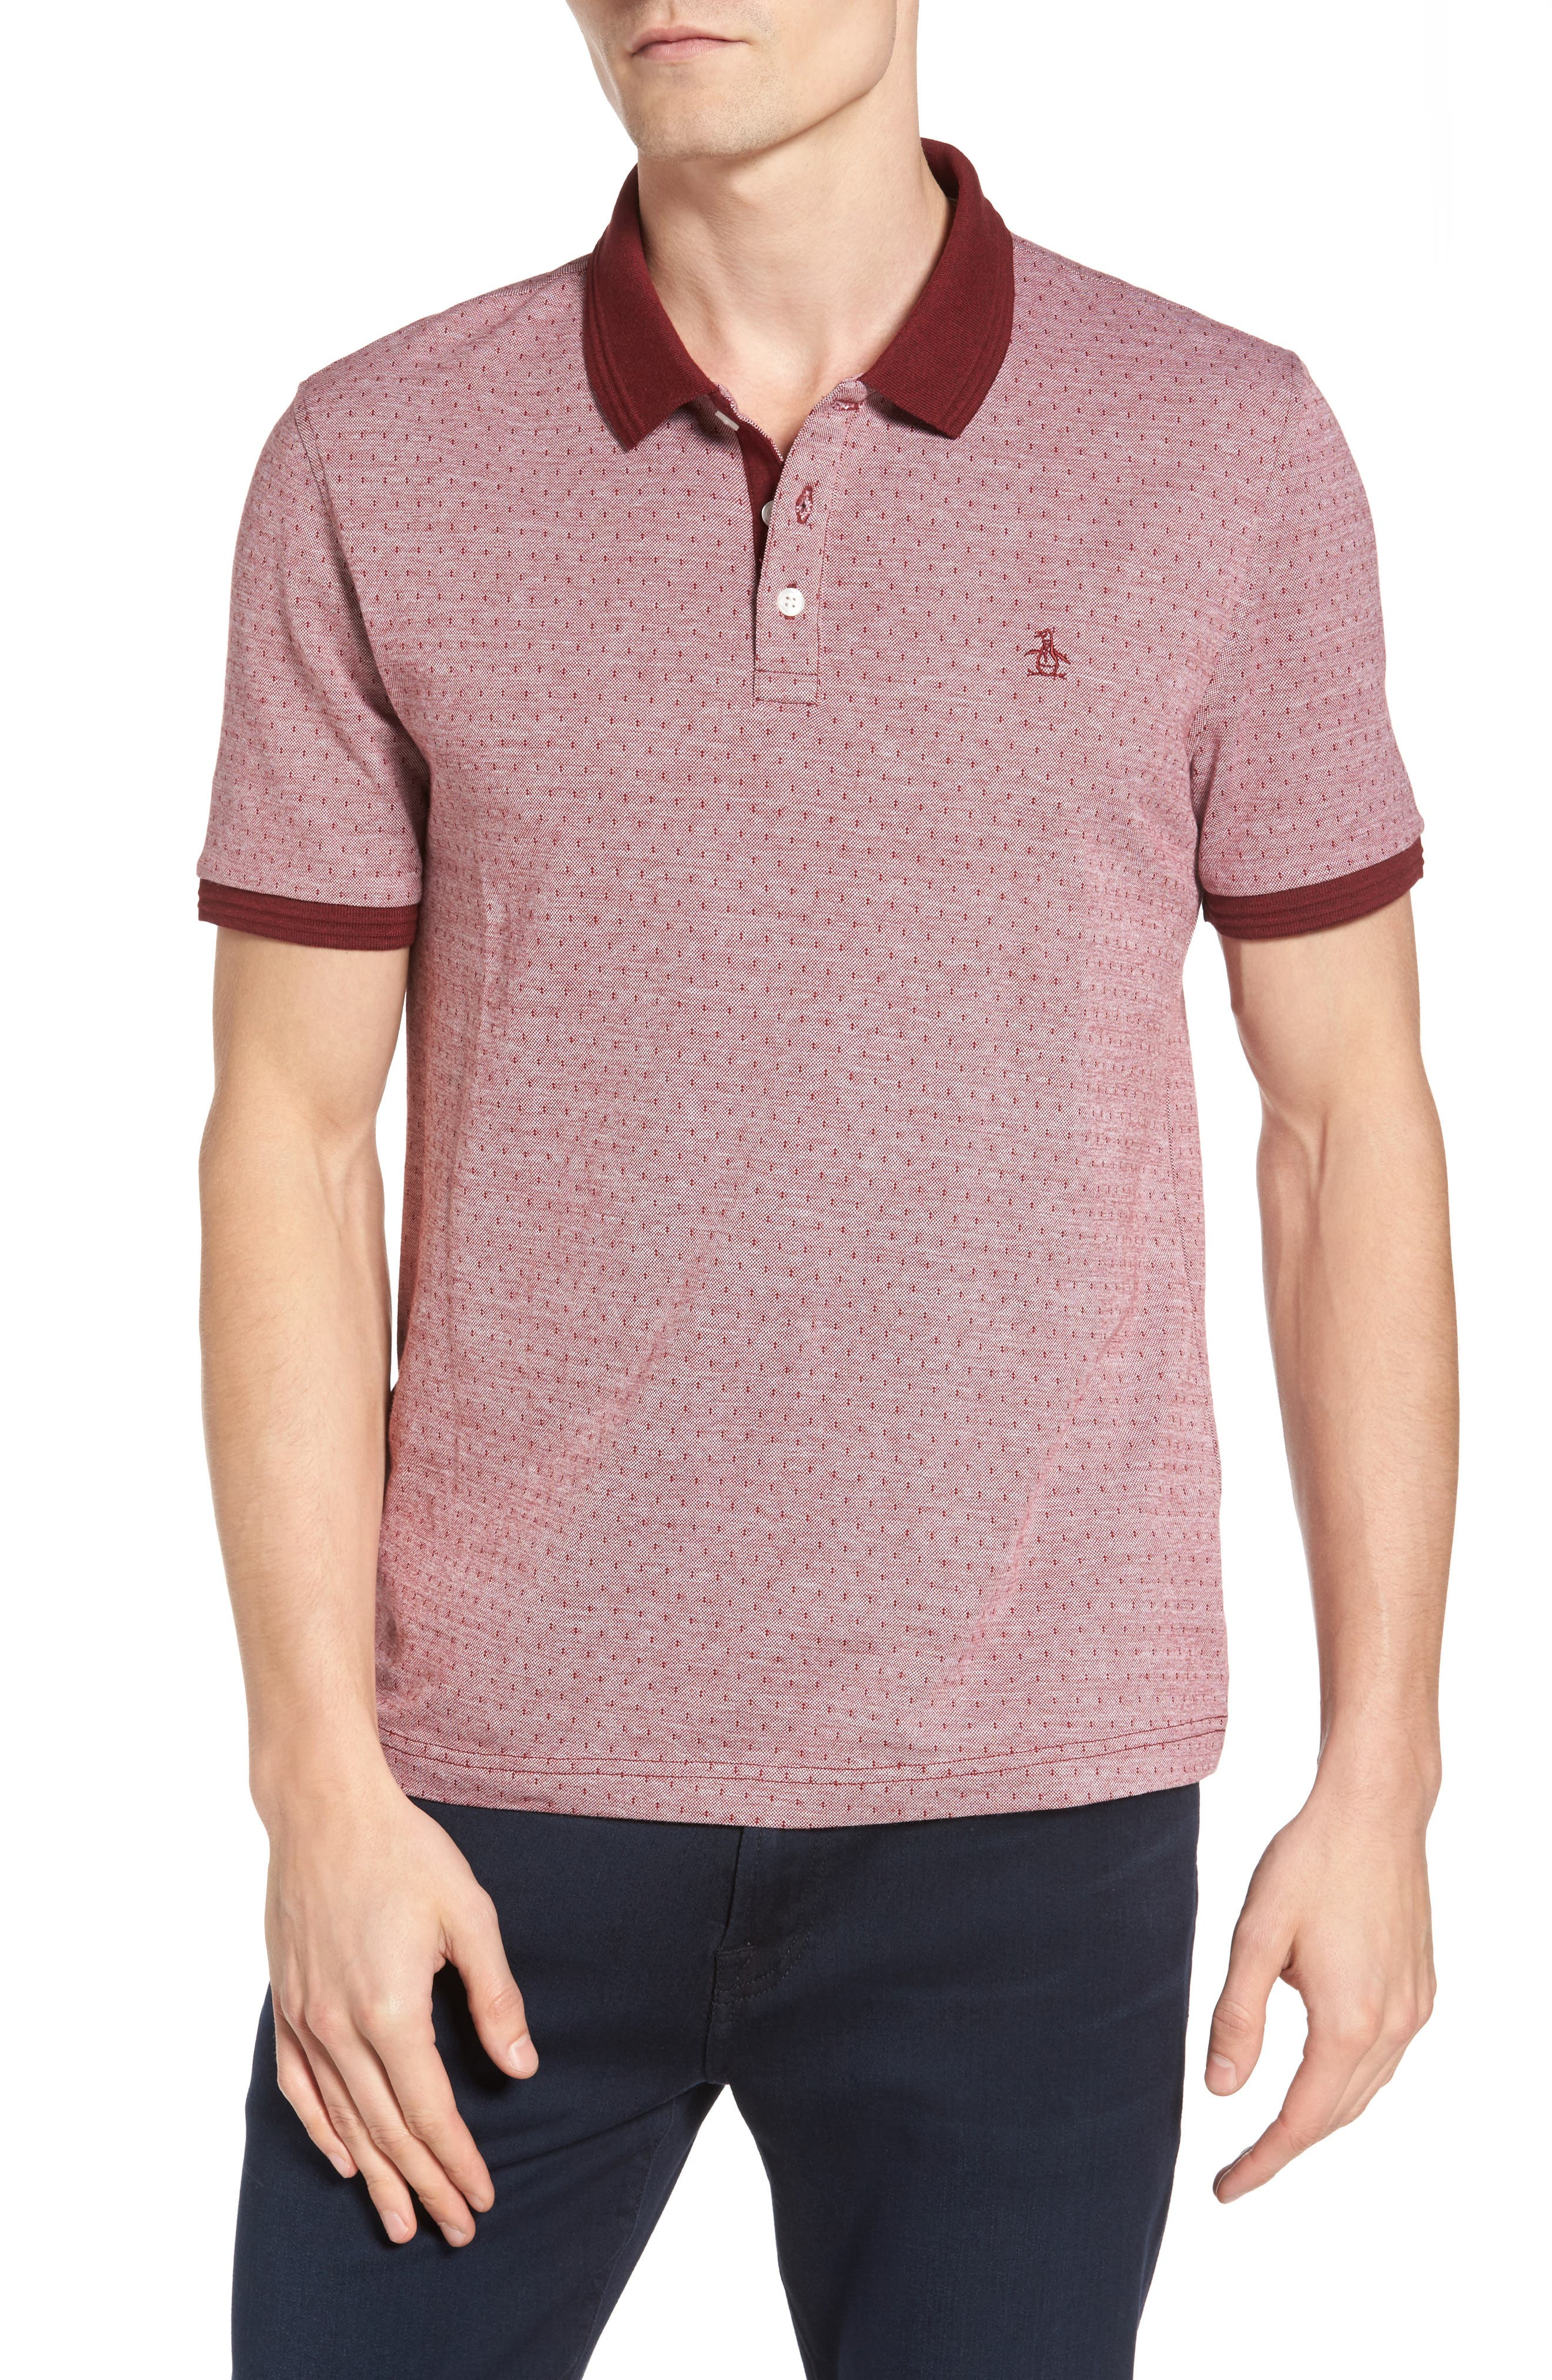 Main Image - Original Penguin Bird's Eye Dobby Polo